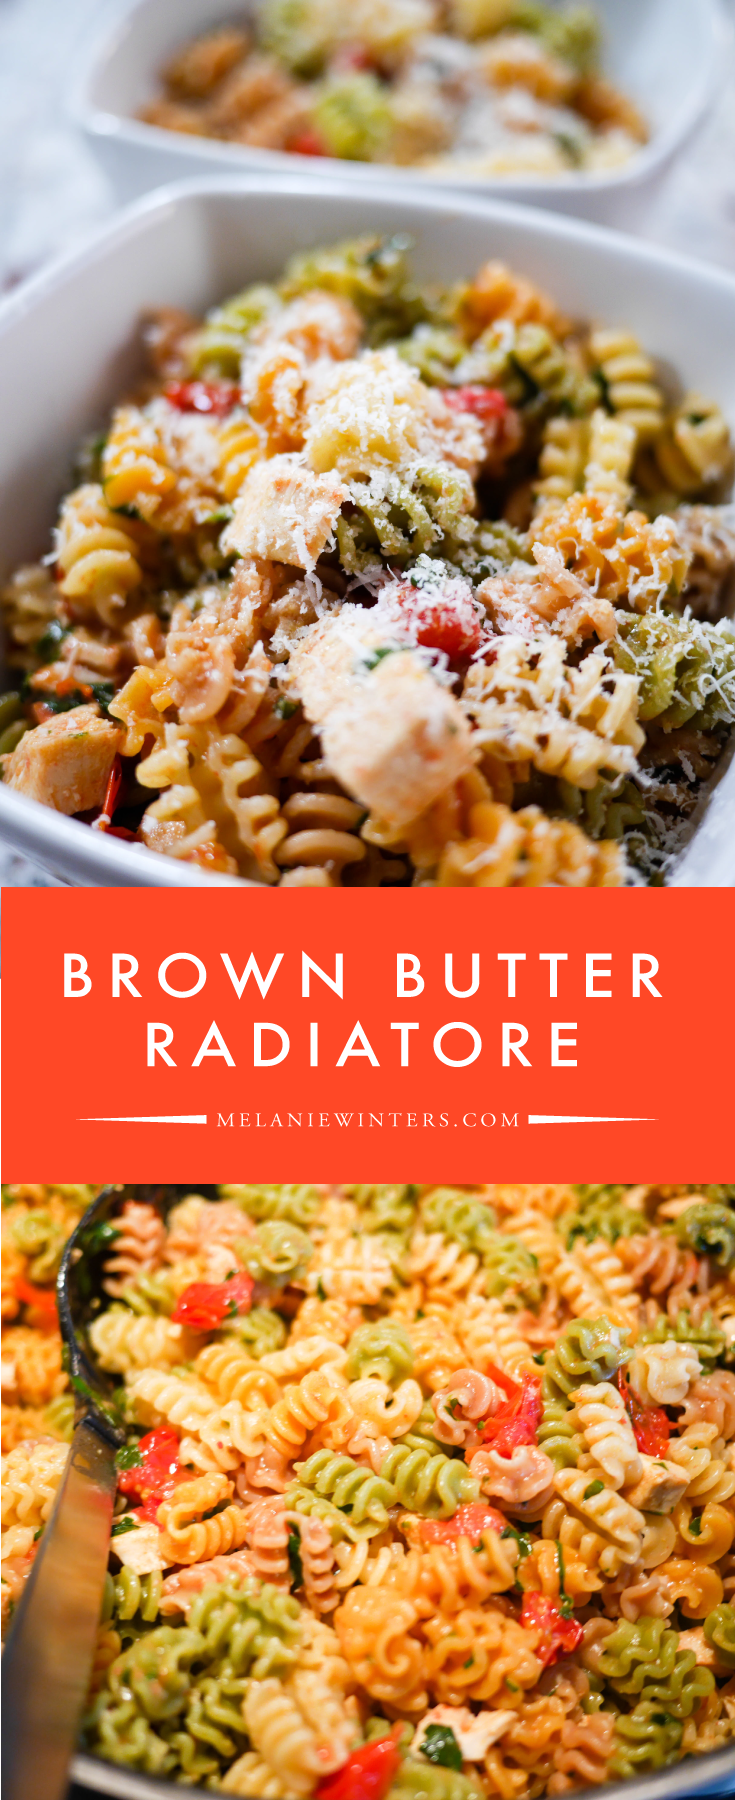 Brown Butter Radiatore